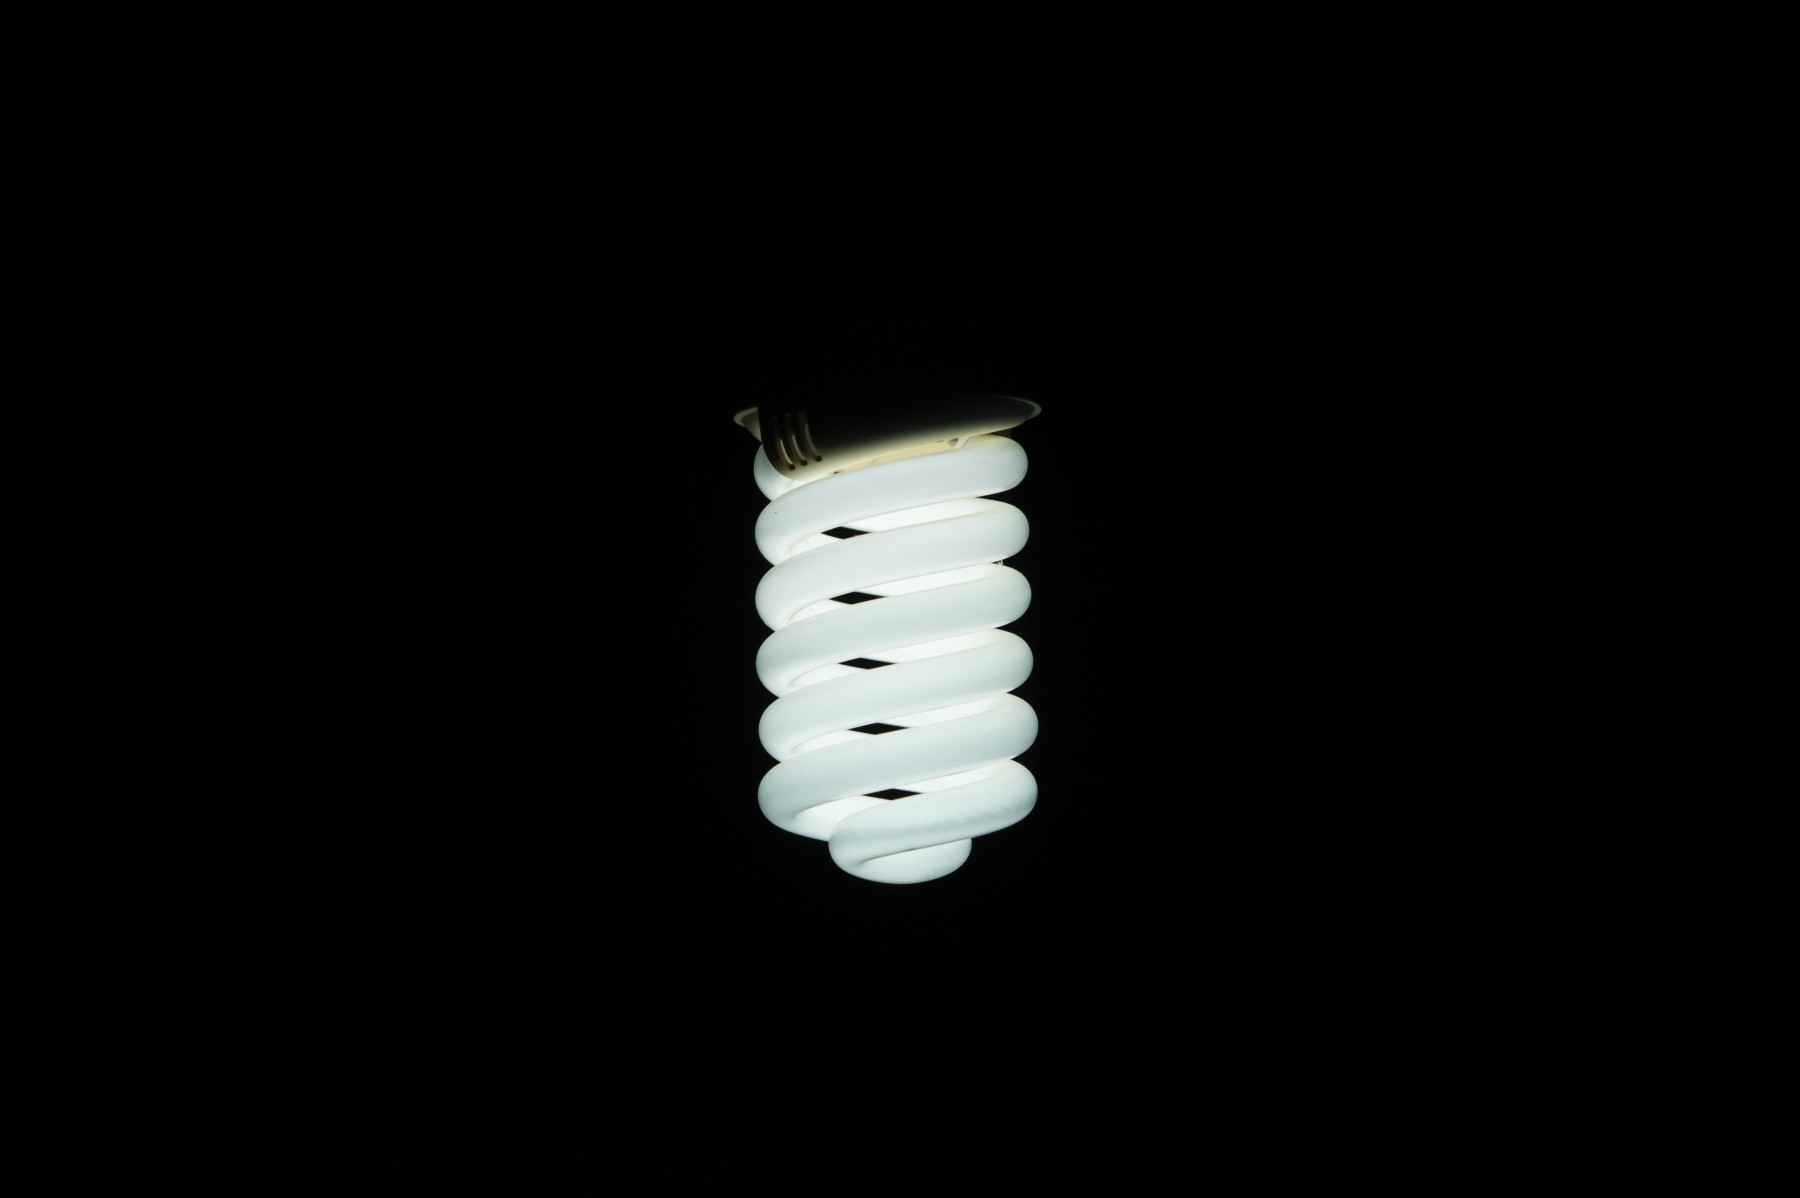 fluorescent bulbs - Tim Kyle